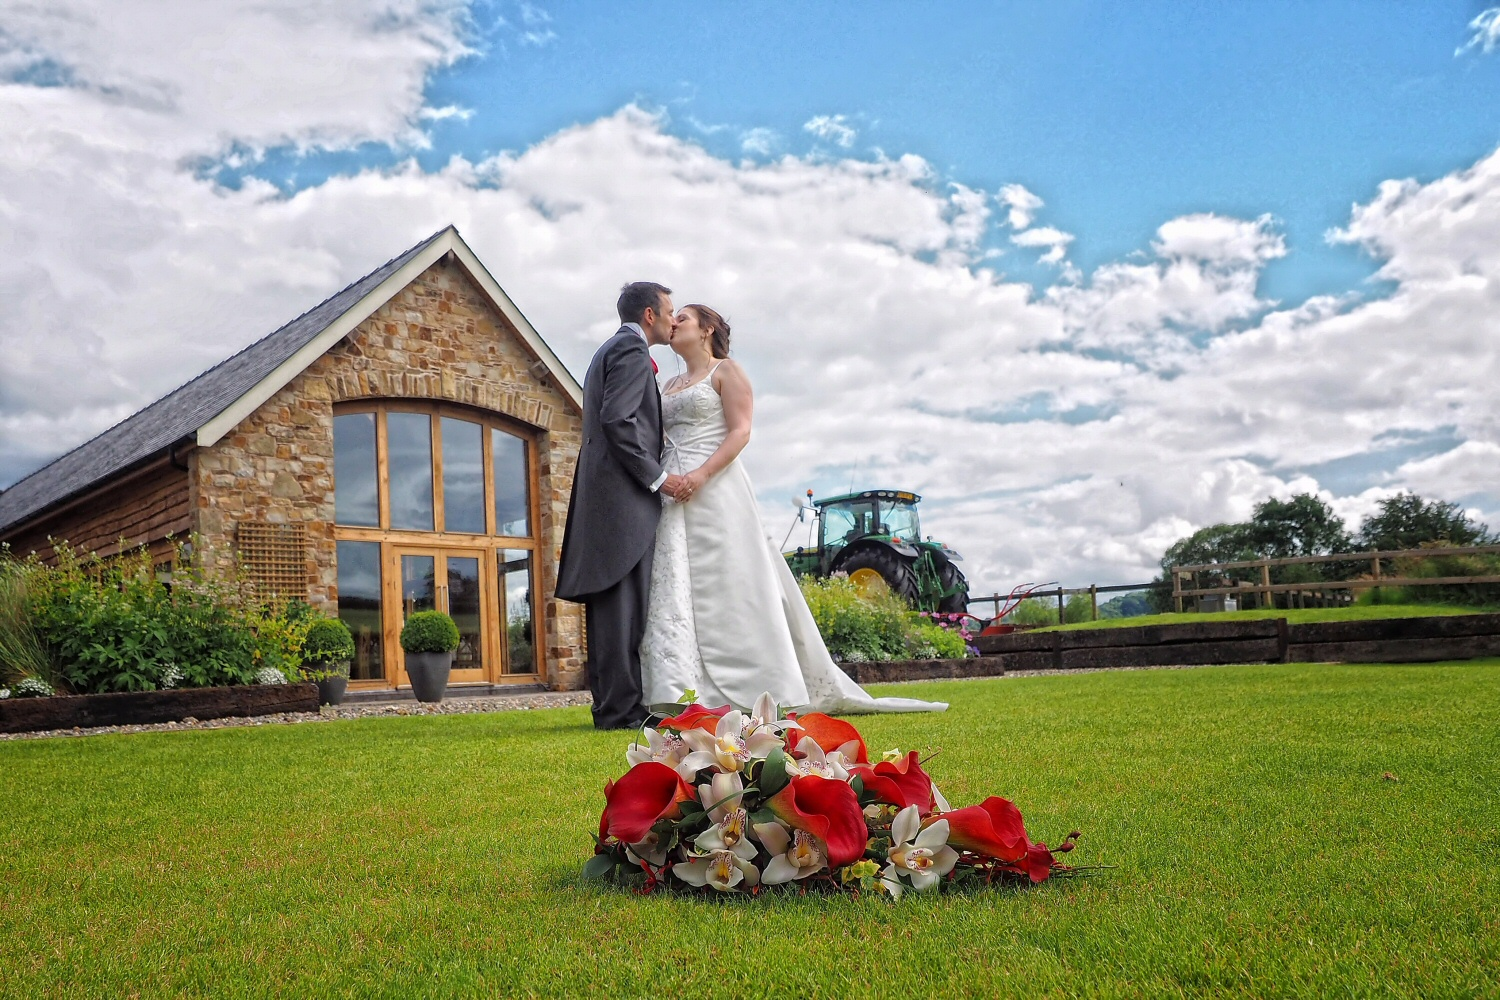 looking for a photographer for wedding photography at Tower Hill Barns